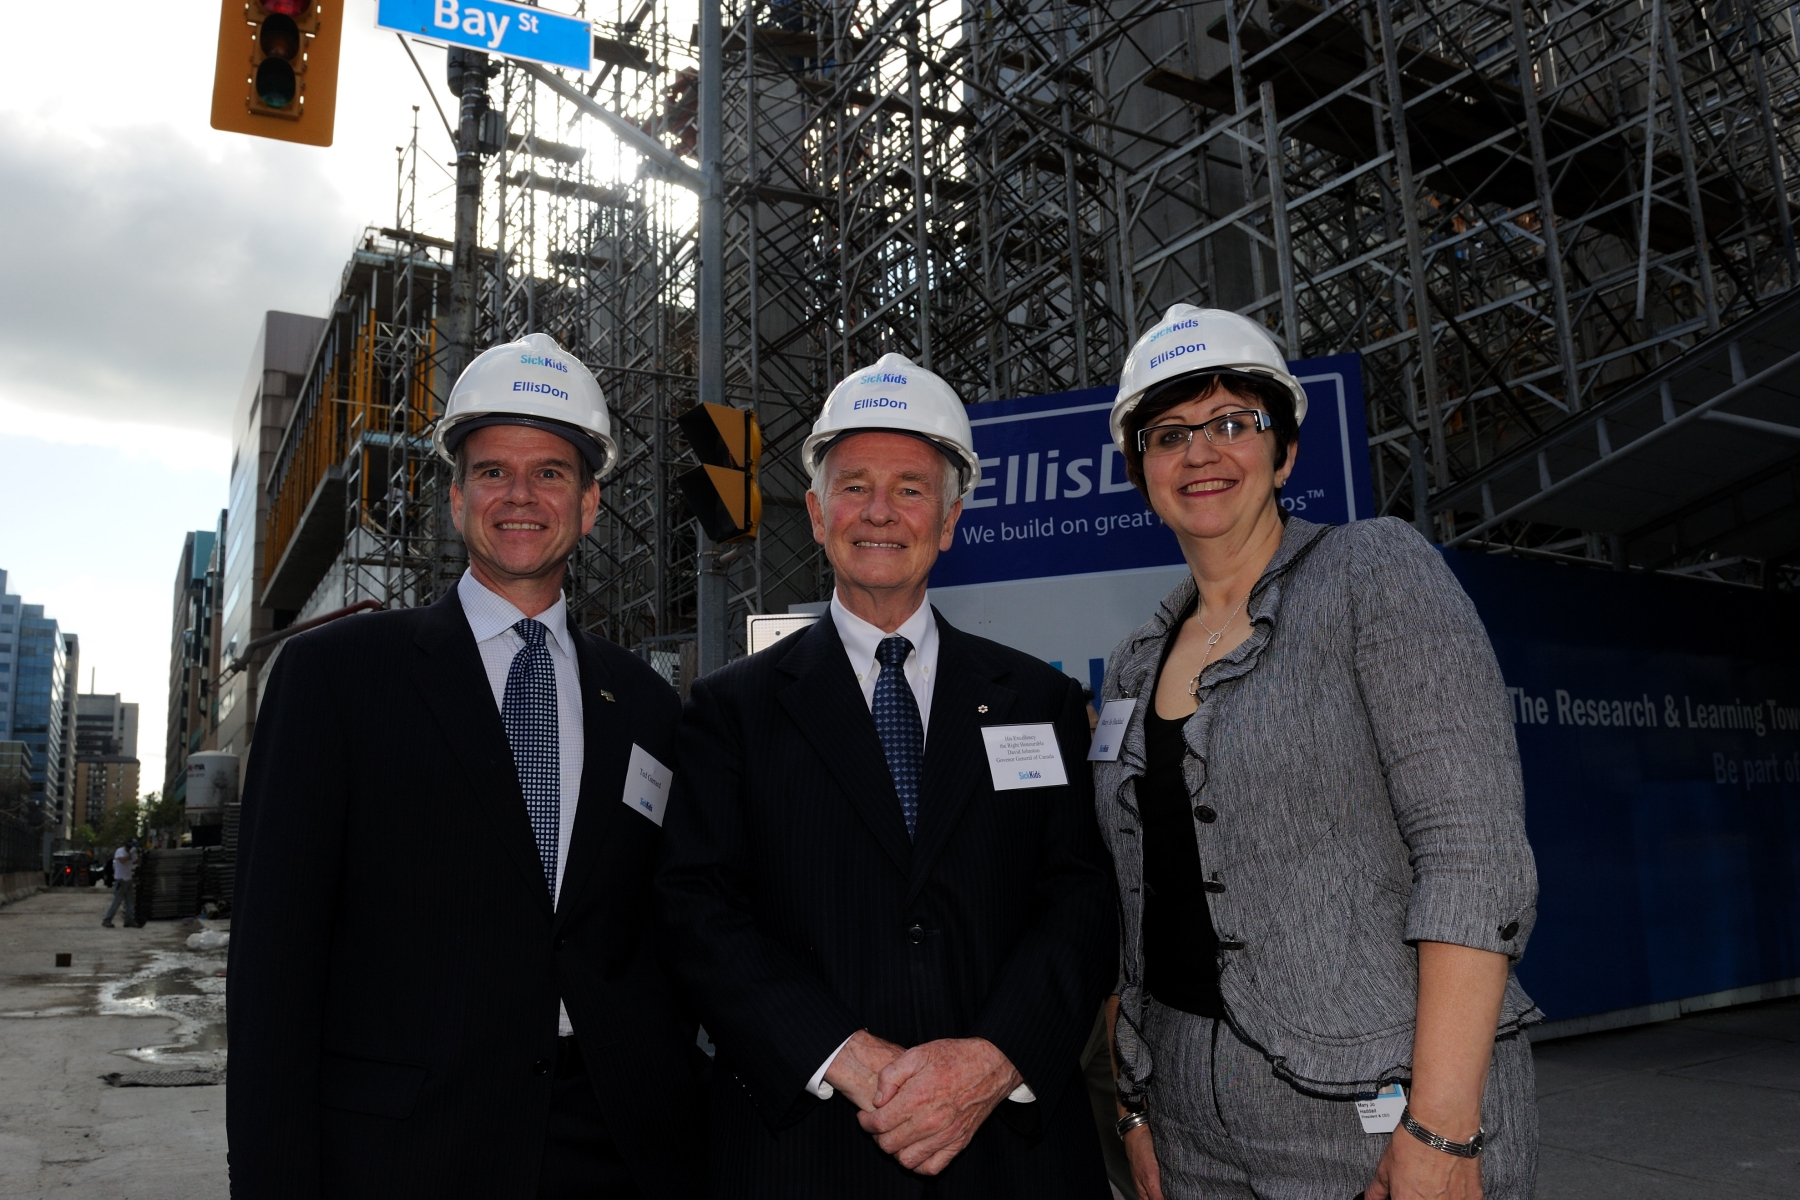 His Excellency also took the time to visit the Hospital for Sick Children Toronto (SickKids). Upon his arrival, the Governor General participated in a hard-hat tour of the SickKids Research and Learning Tower, and was accompanied by Mary Jo Haddad, President and CEO, The Hospital for Sick Children (right), and Ted Garrard, President and CEO, SickKids Foundation (left).